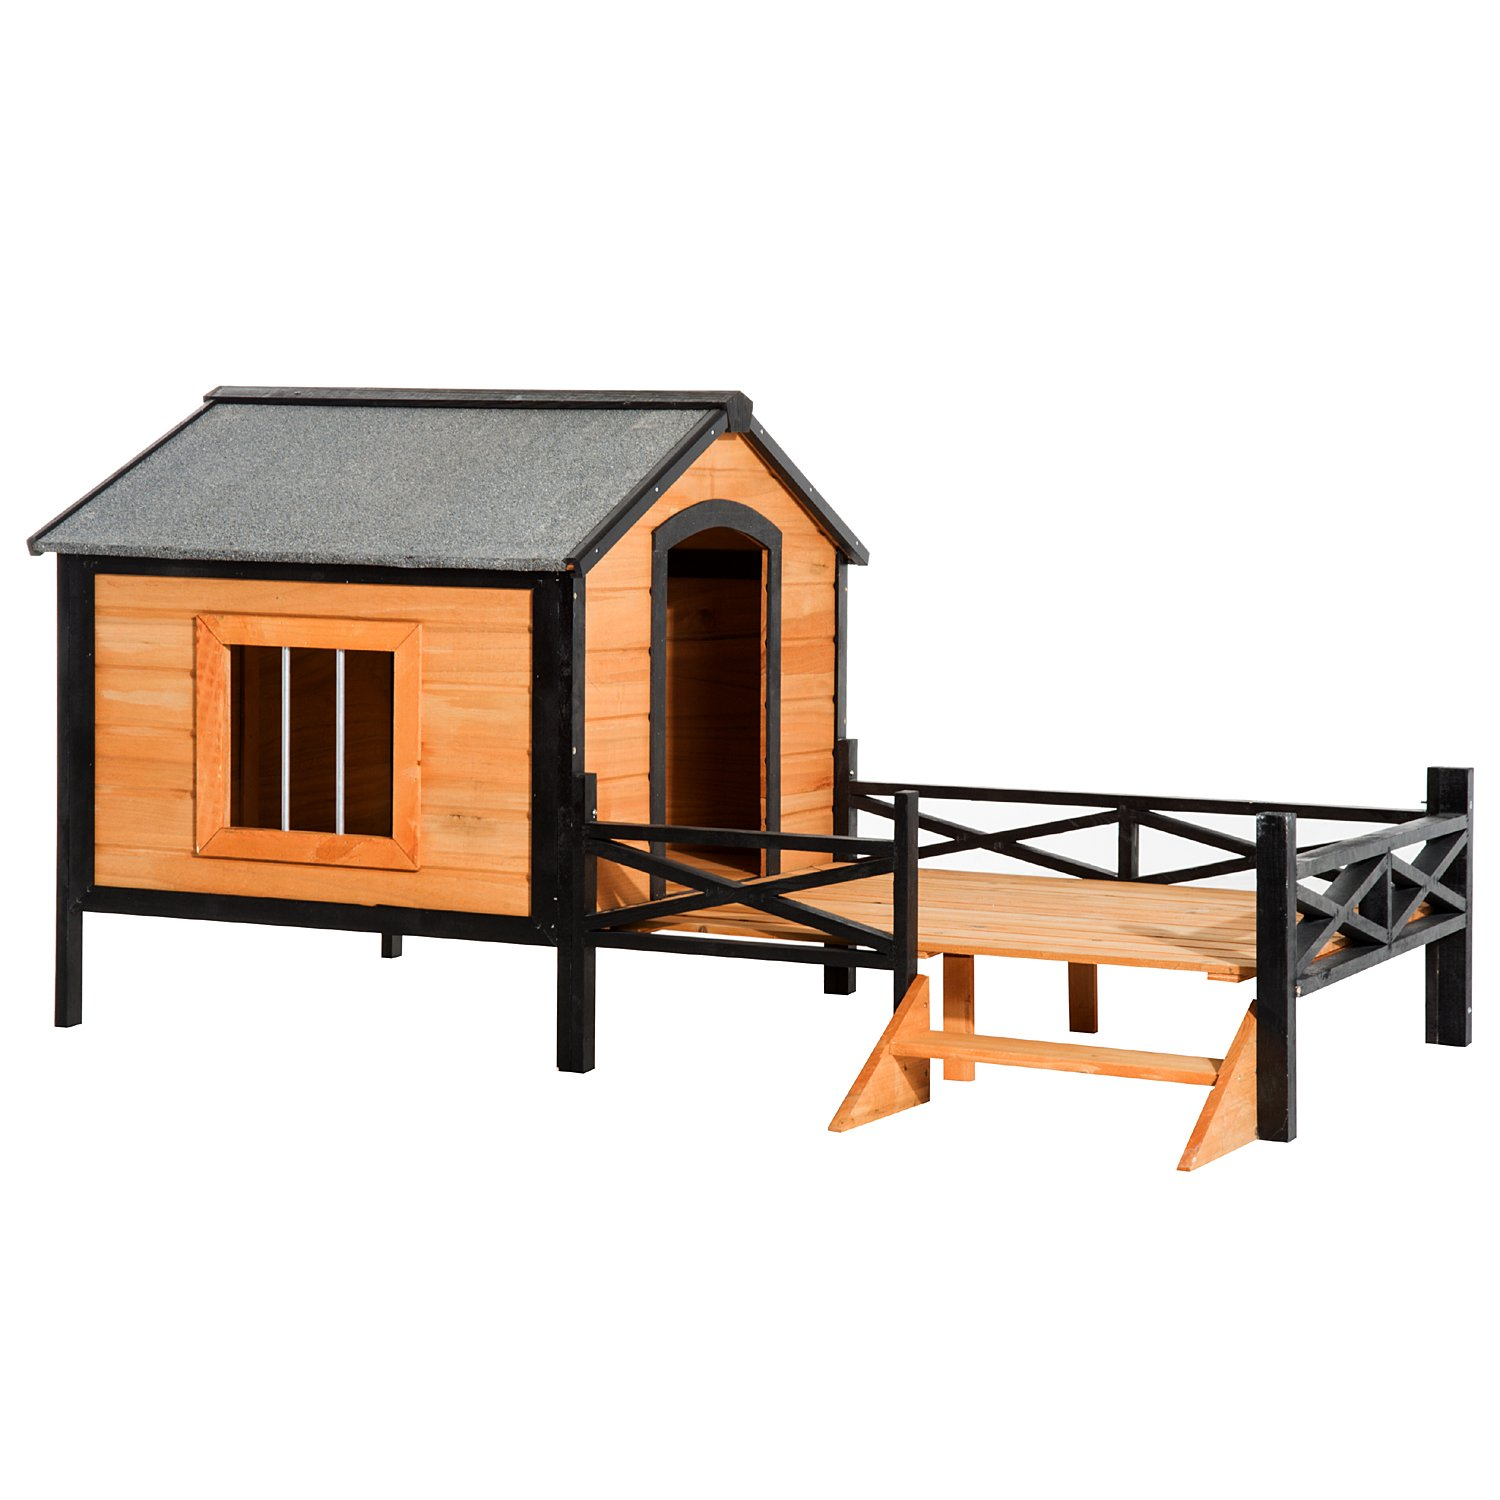 PawHut Large Wooden Cabin Style Elevated Outdoor Dog House